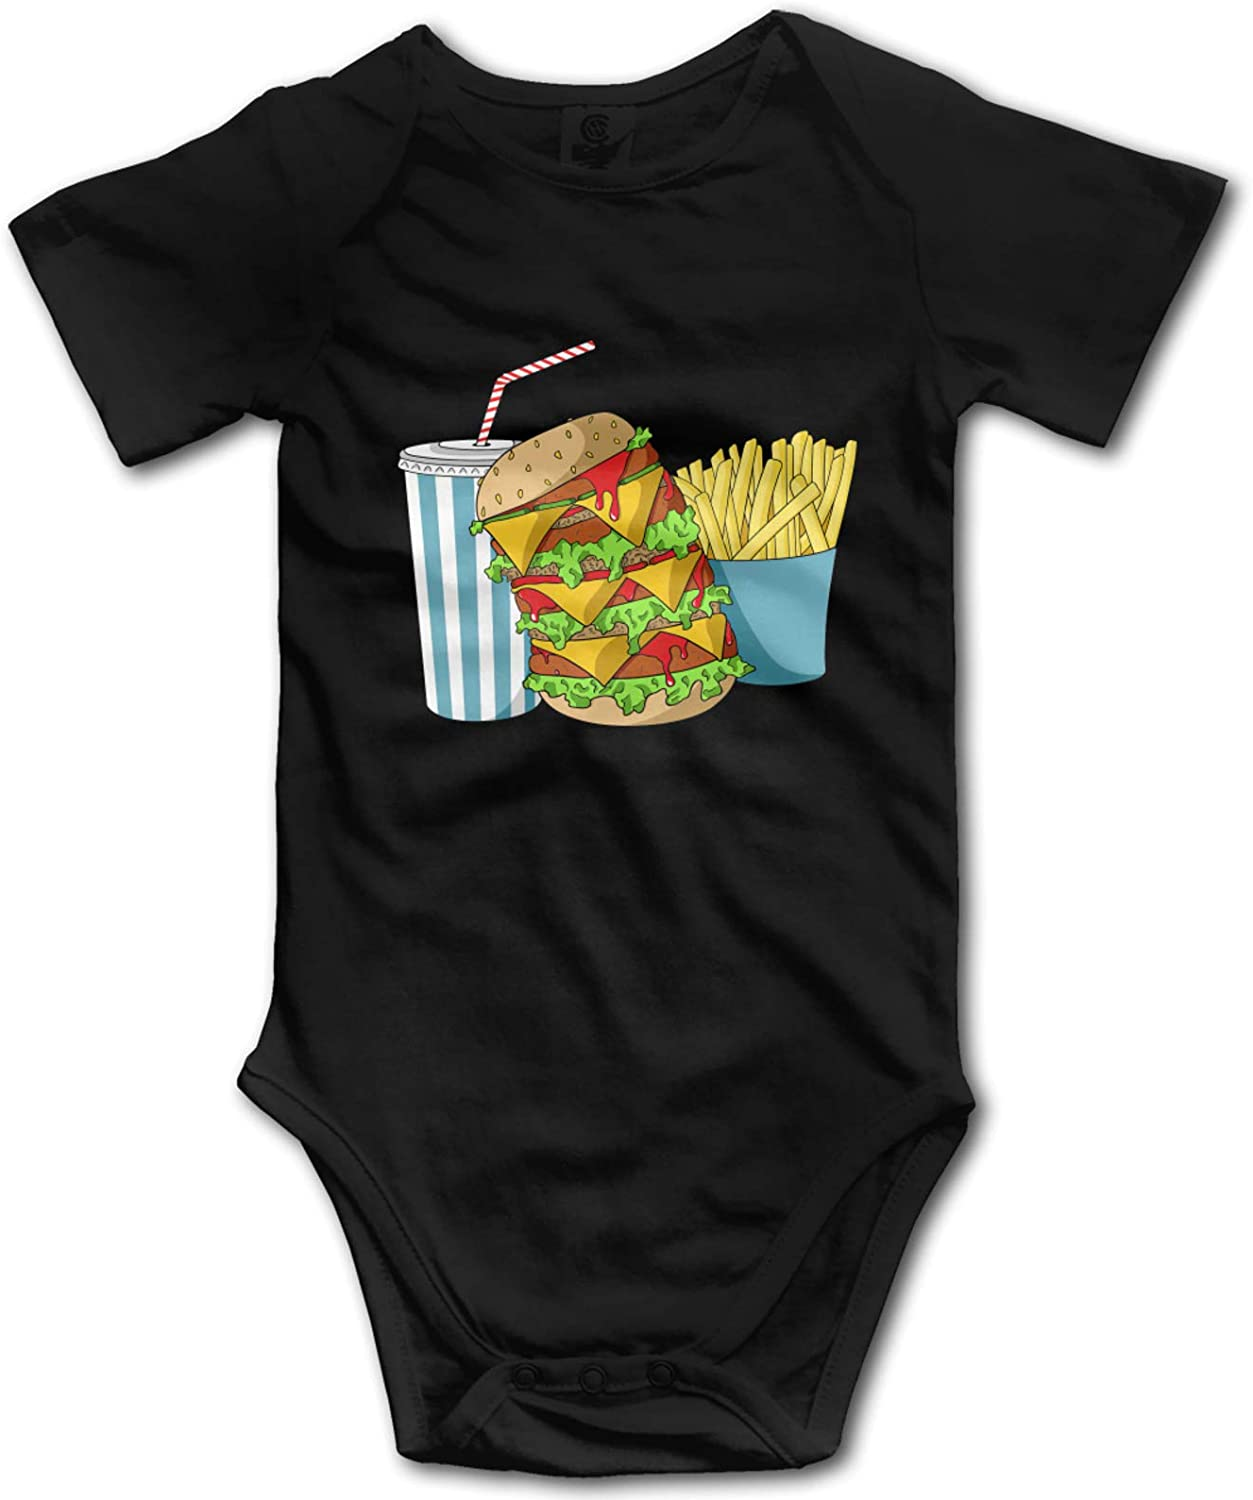 Junk Food and A Diet Coke Baby Boy Girl Clothes Summer Outfits Cotton Onesies Bodysuit